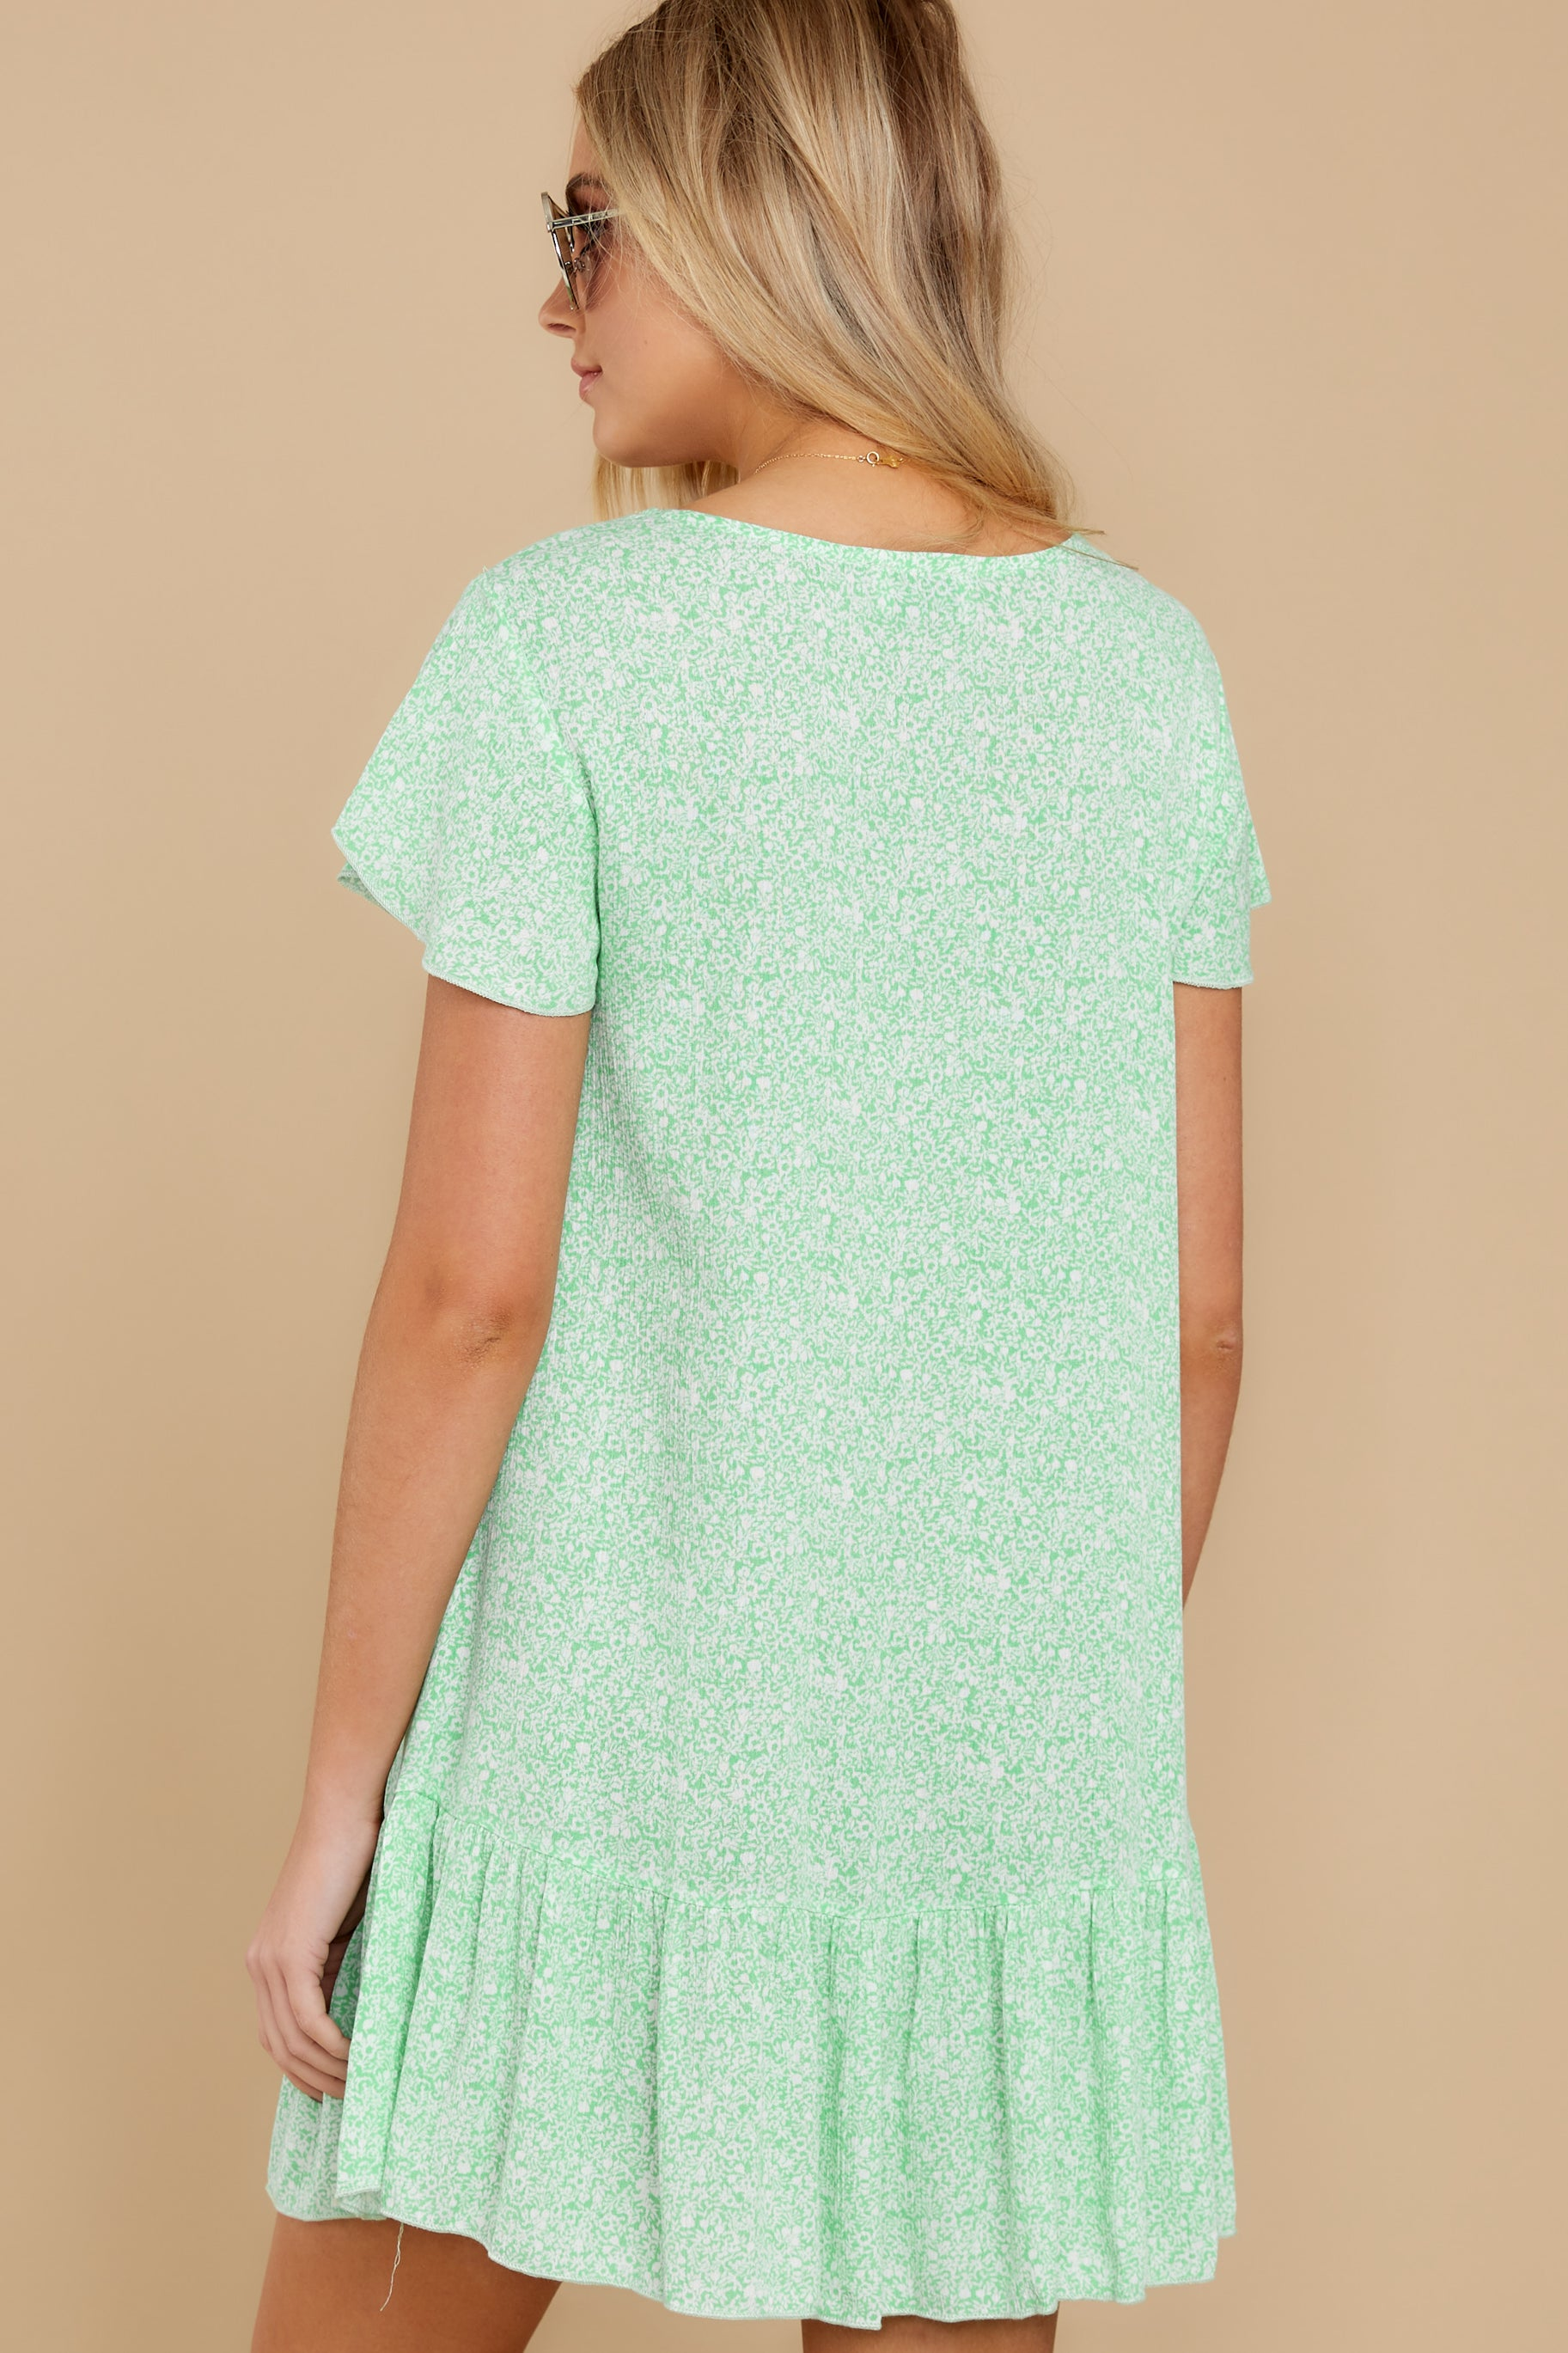 6 Moments Of Leisure Light Green Floral Print Dress at reddress.com